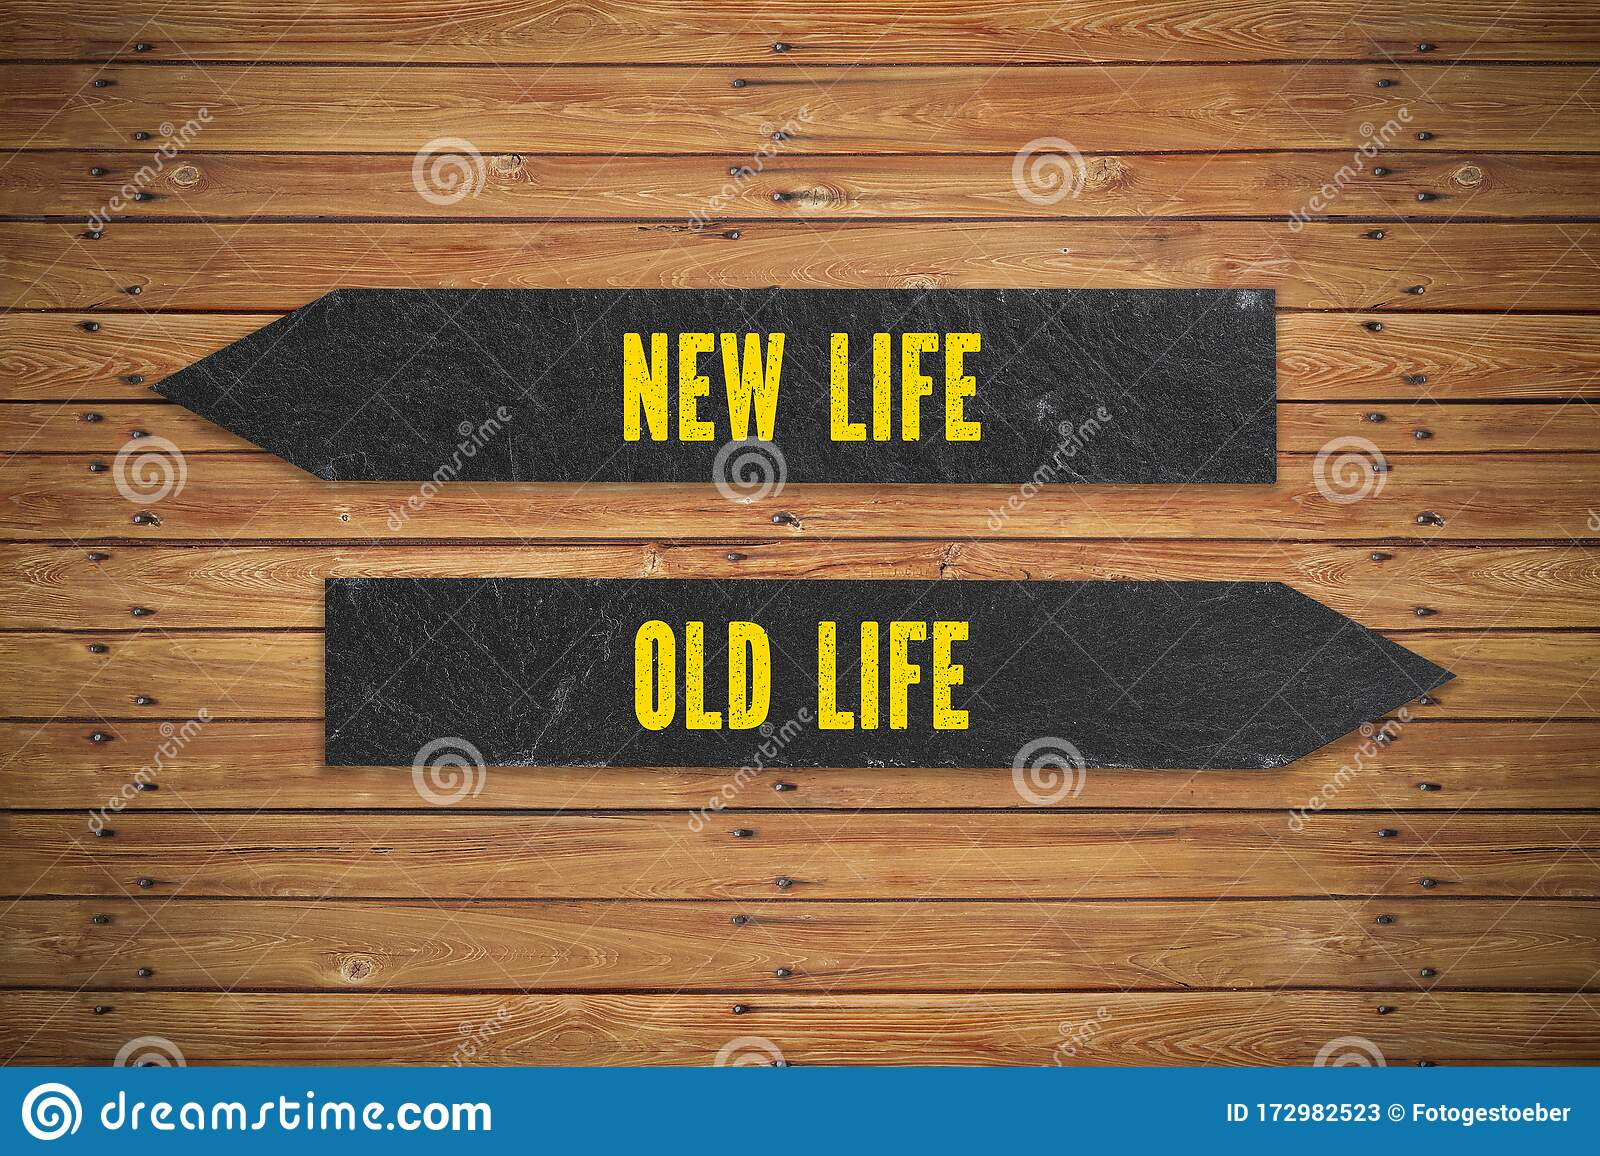 New Life Versus Old Life Concept Stock Image